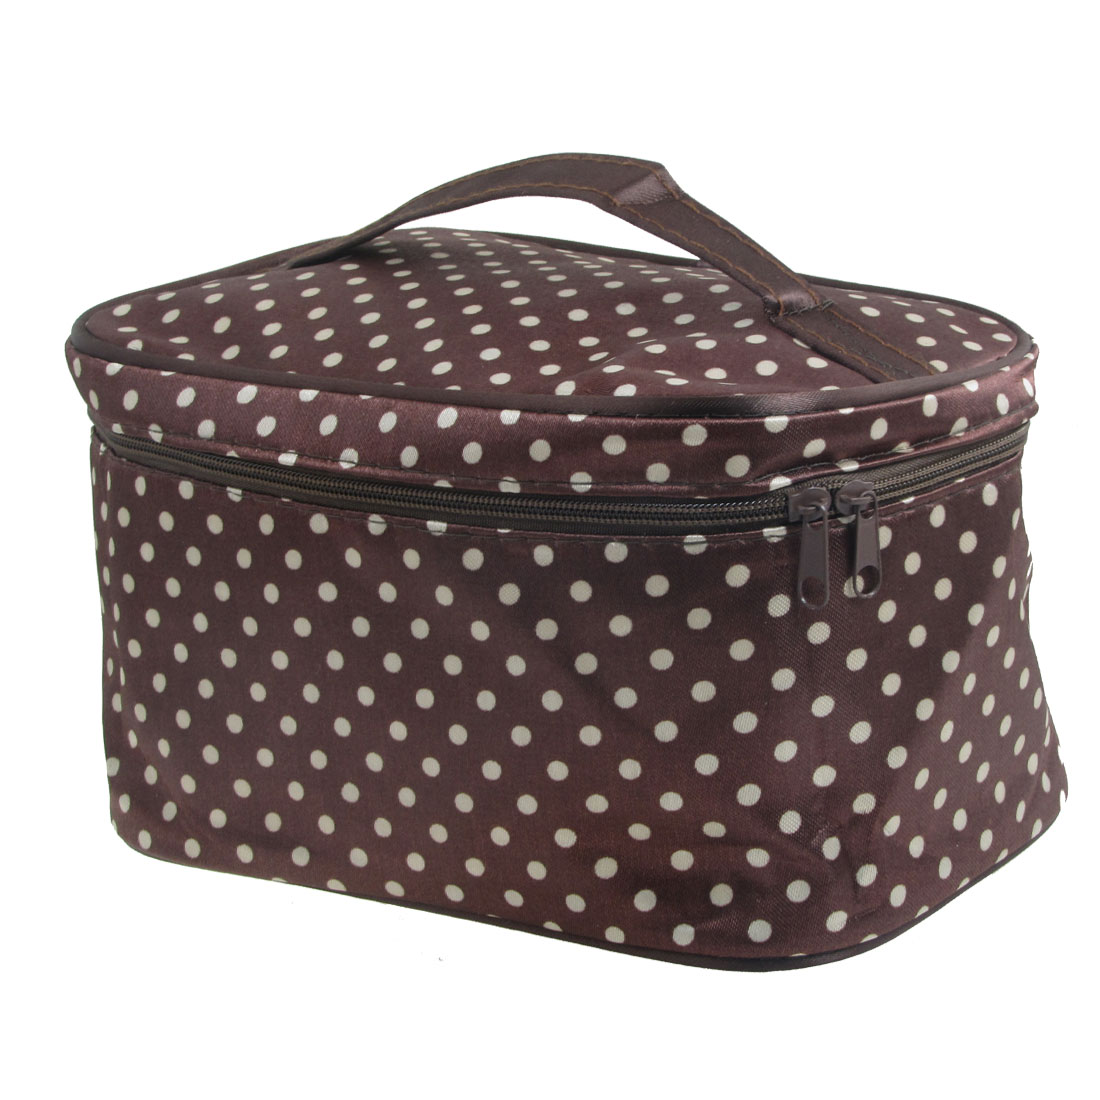 Double Zipper Closure Traveling Makeup Cosmetic Bag w Mirror